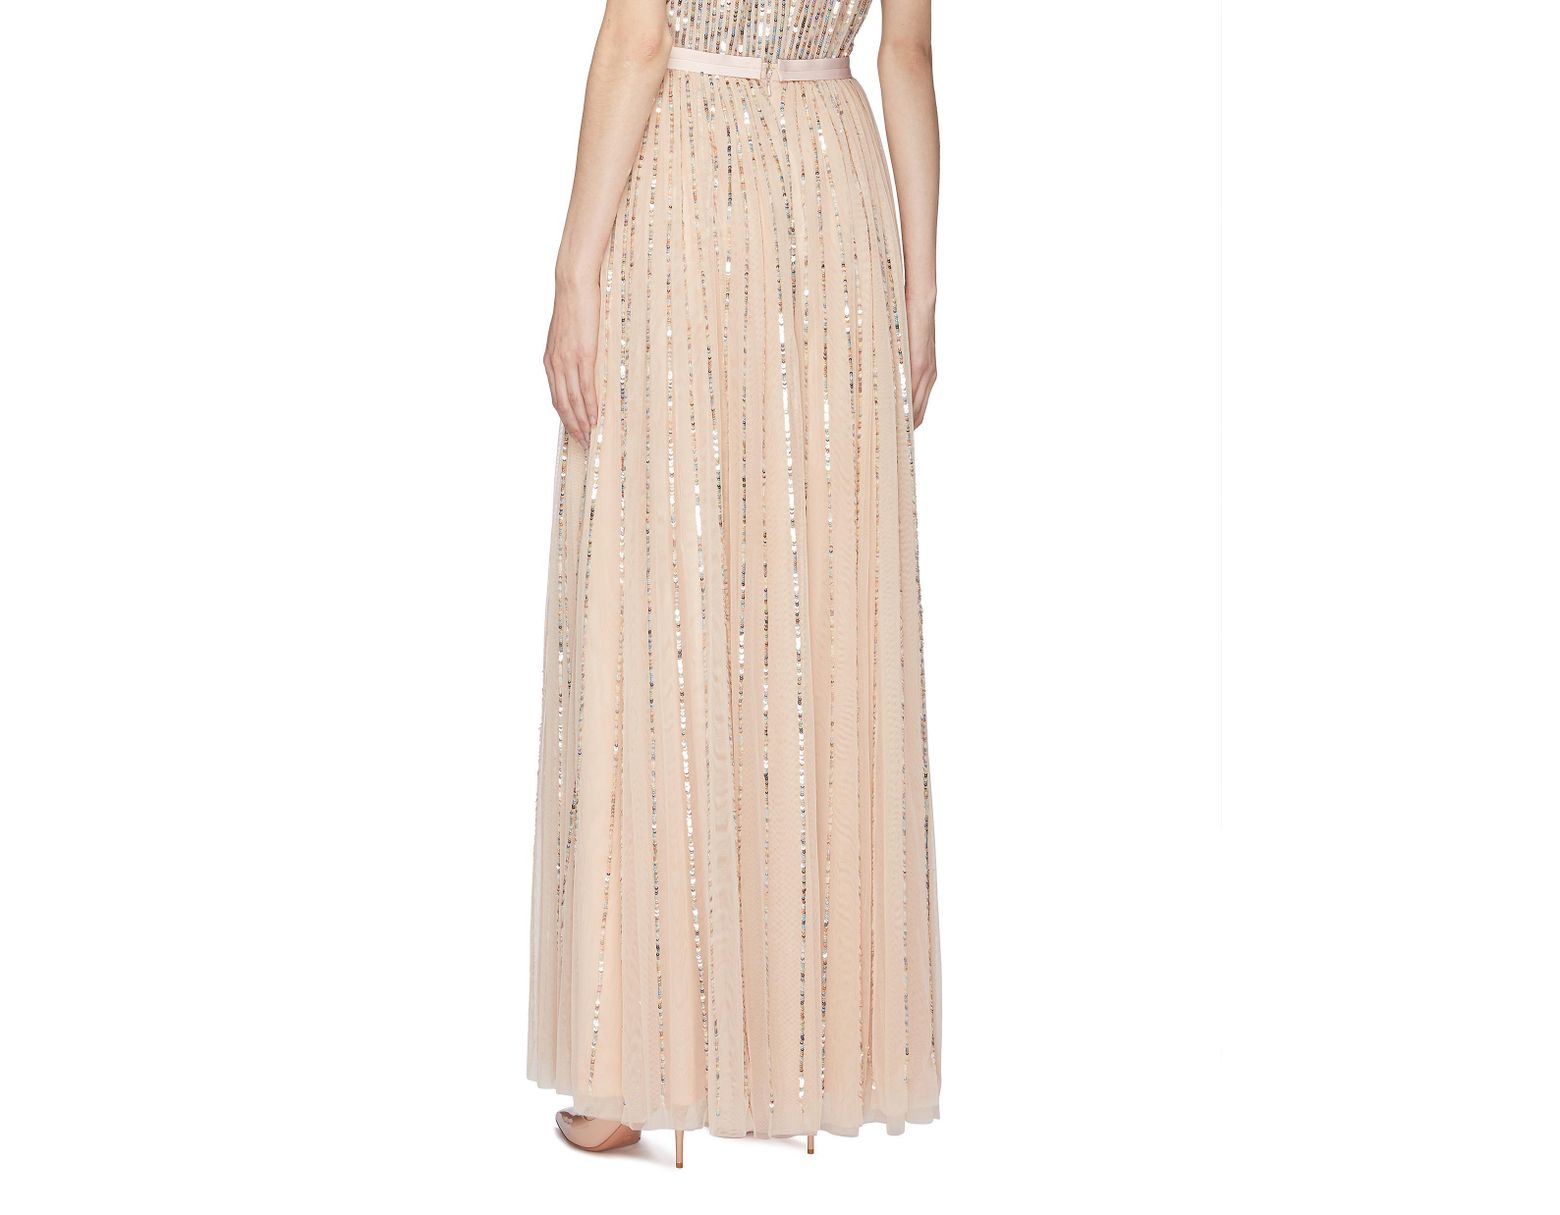 edd8d3e15c Needle & Thread 'shimmer Sequin' Pleated Tulle Maxi Skirt in Pink - Lyst